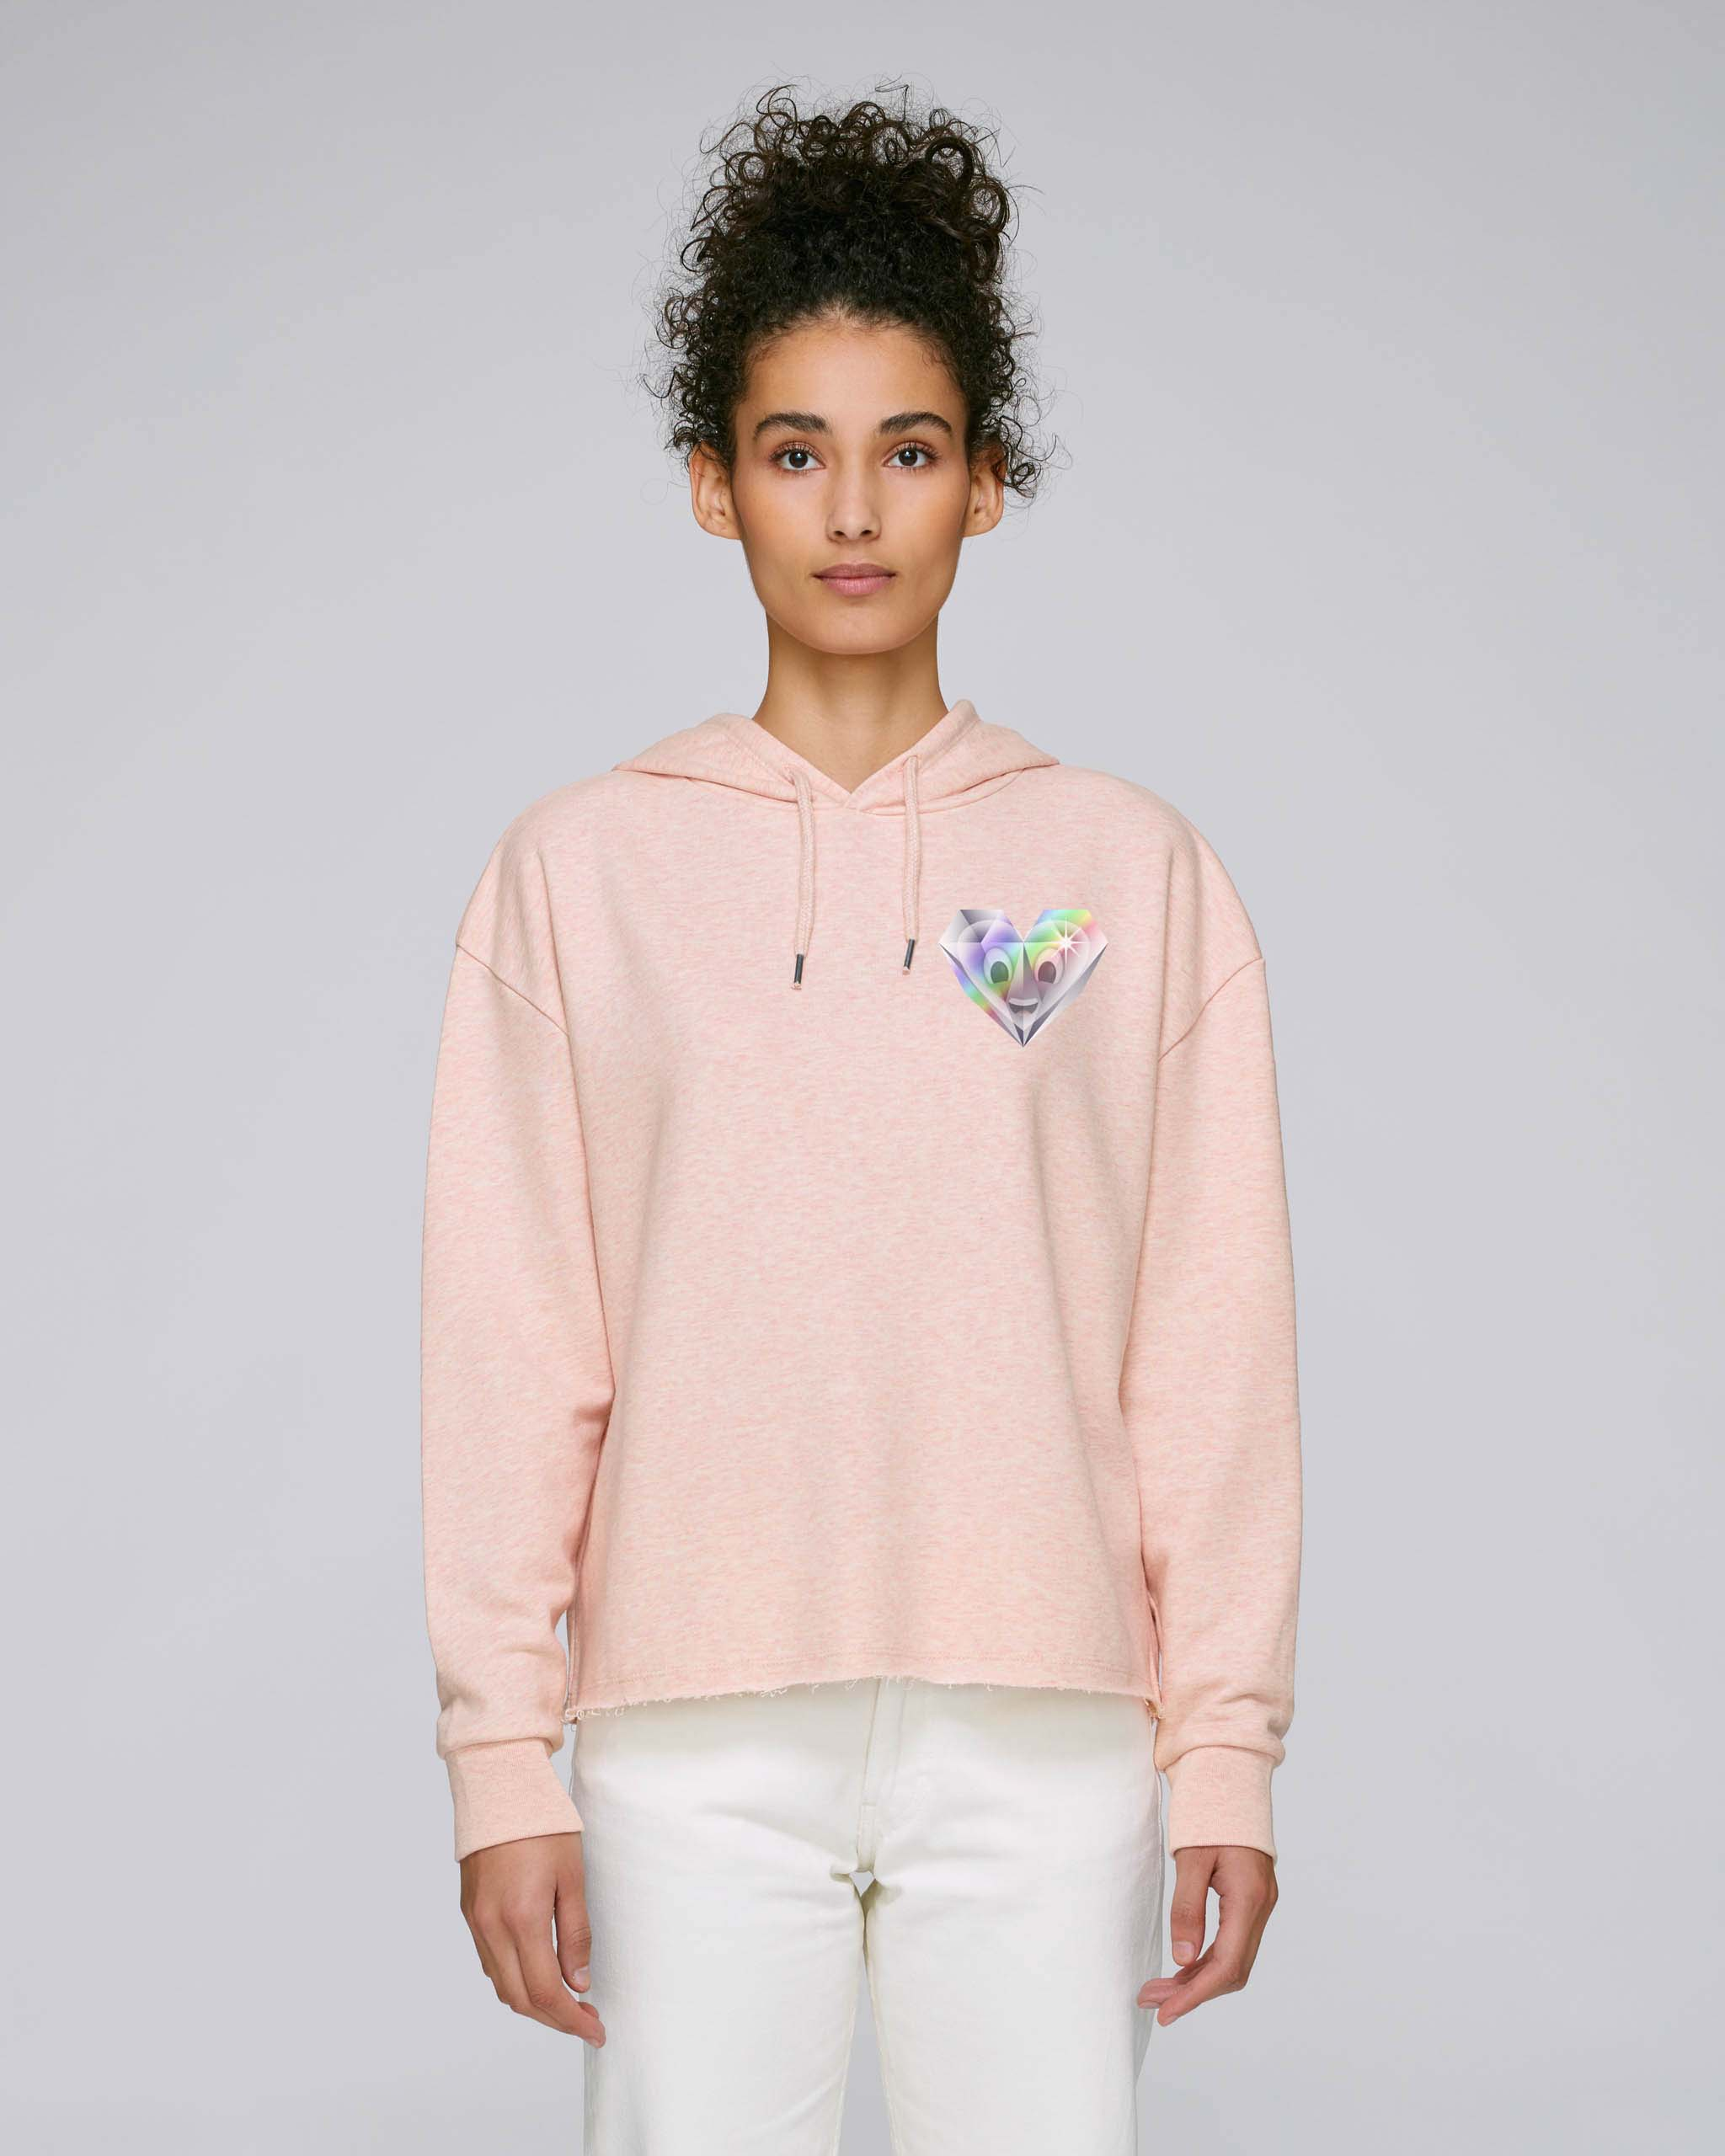 Sweat-Shirt Bio rose coton Femme - Diamond sweat